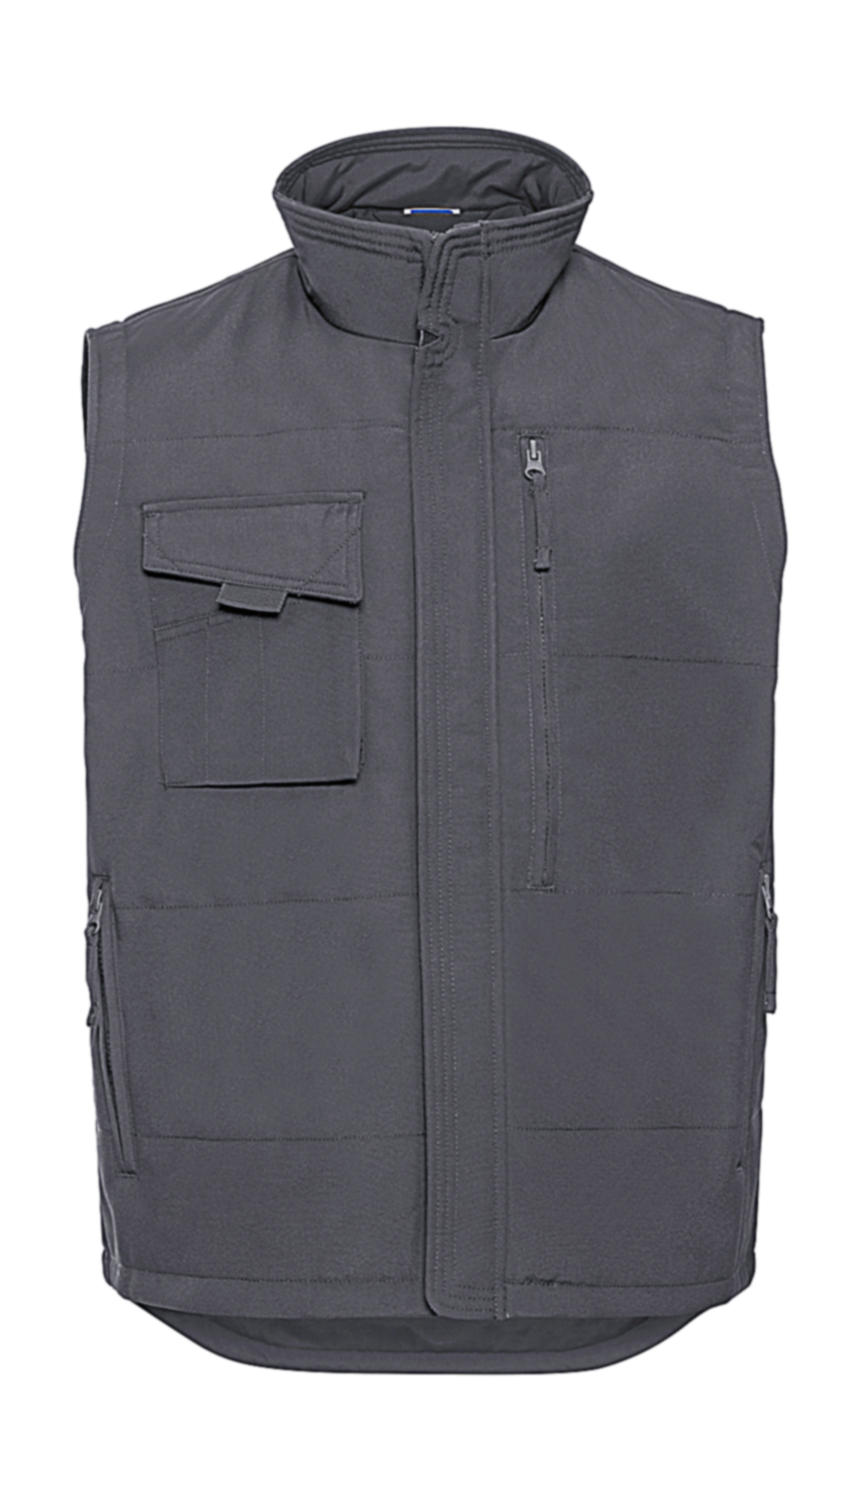 Russell Europe Workwear Bodywarmer